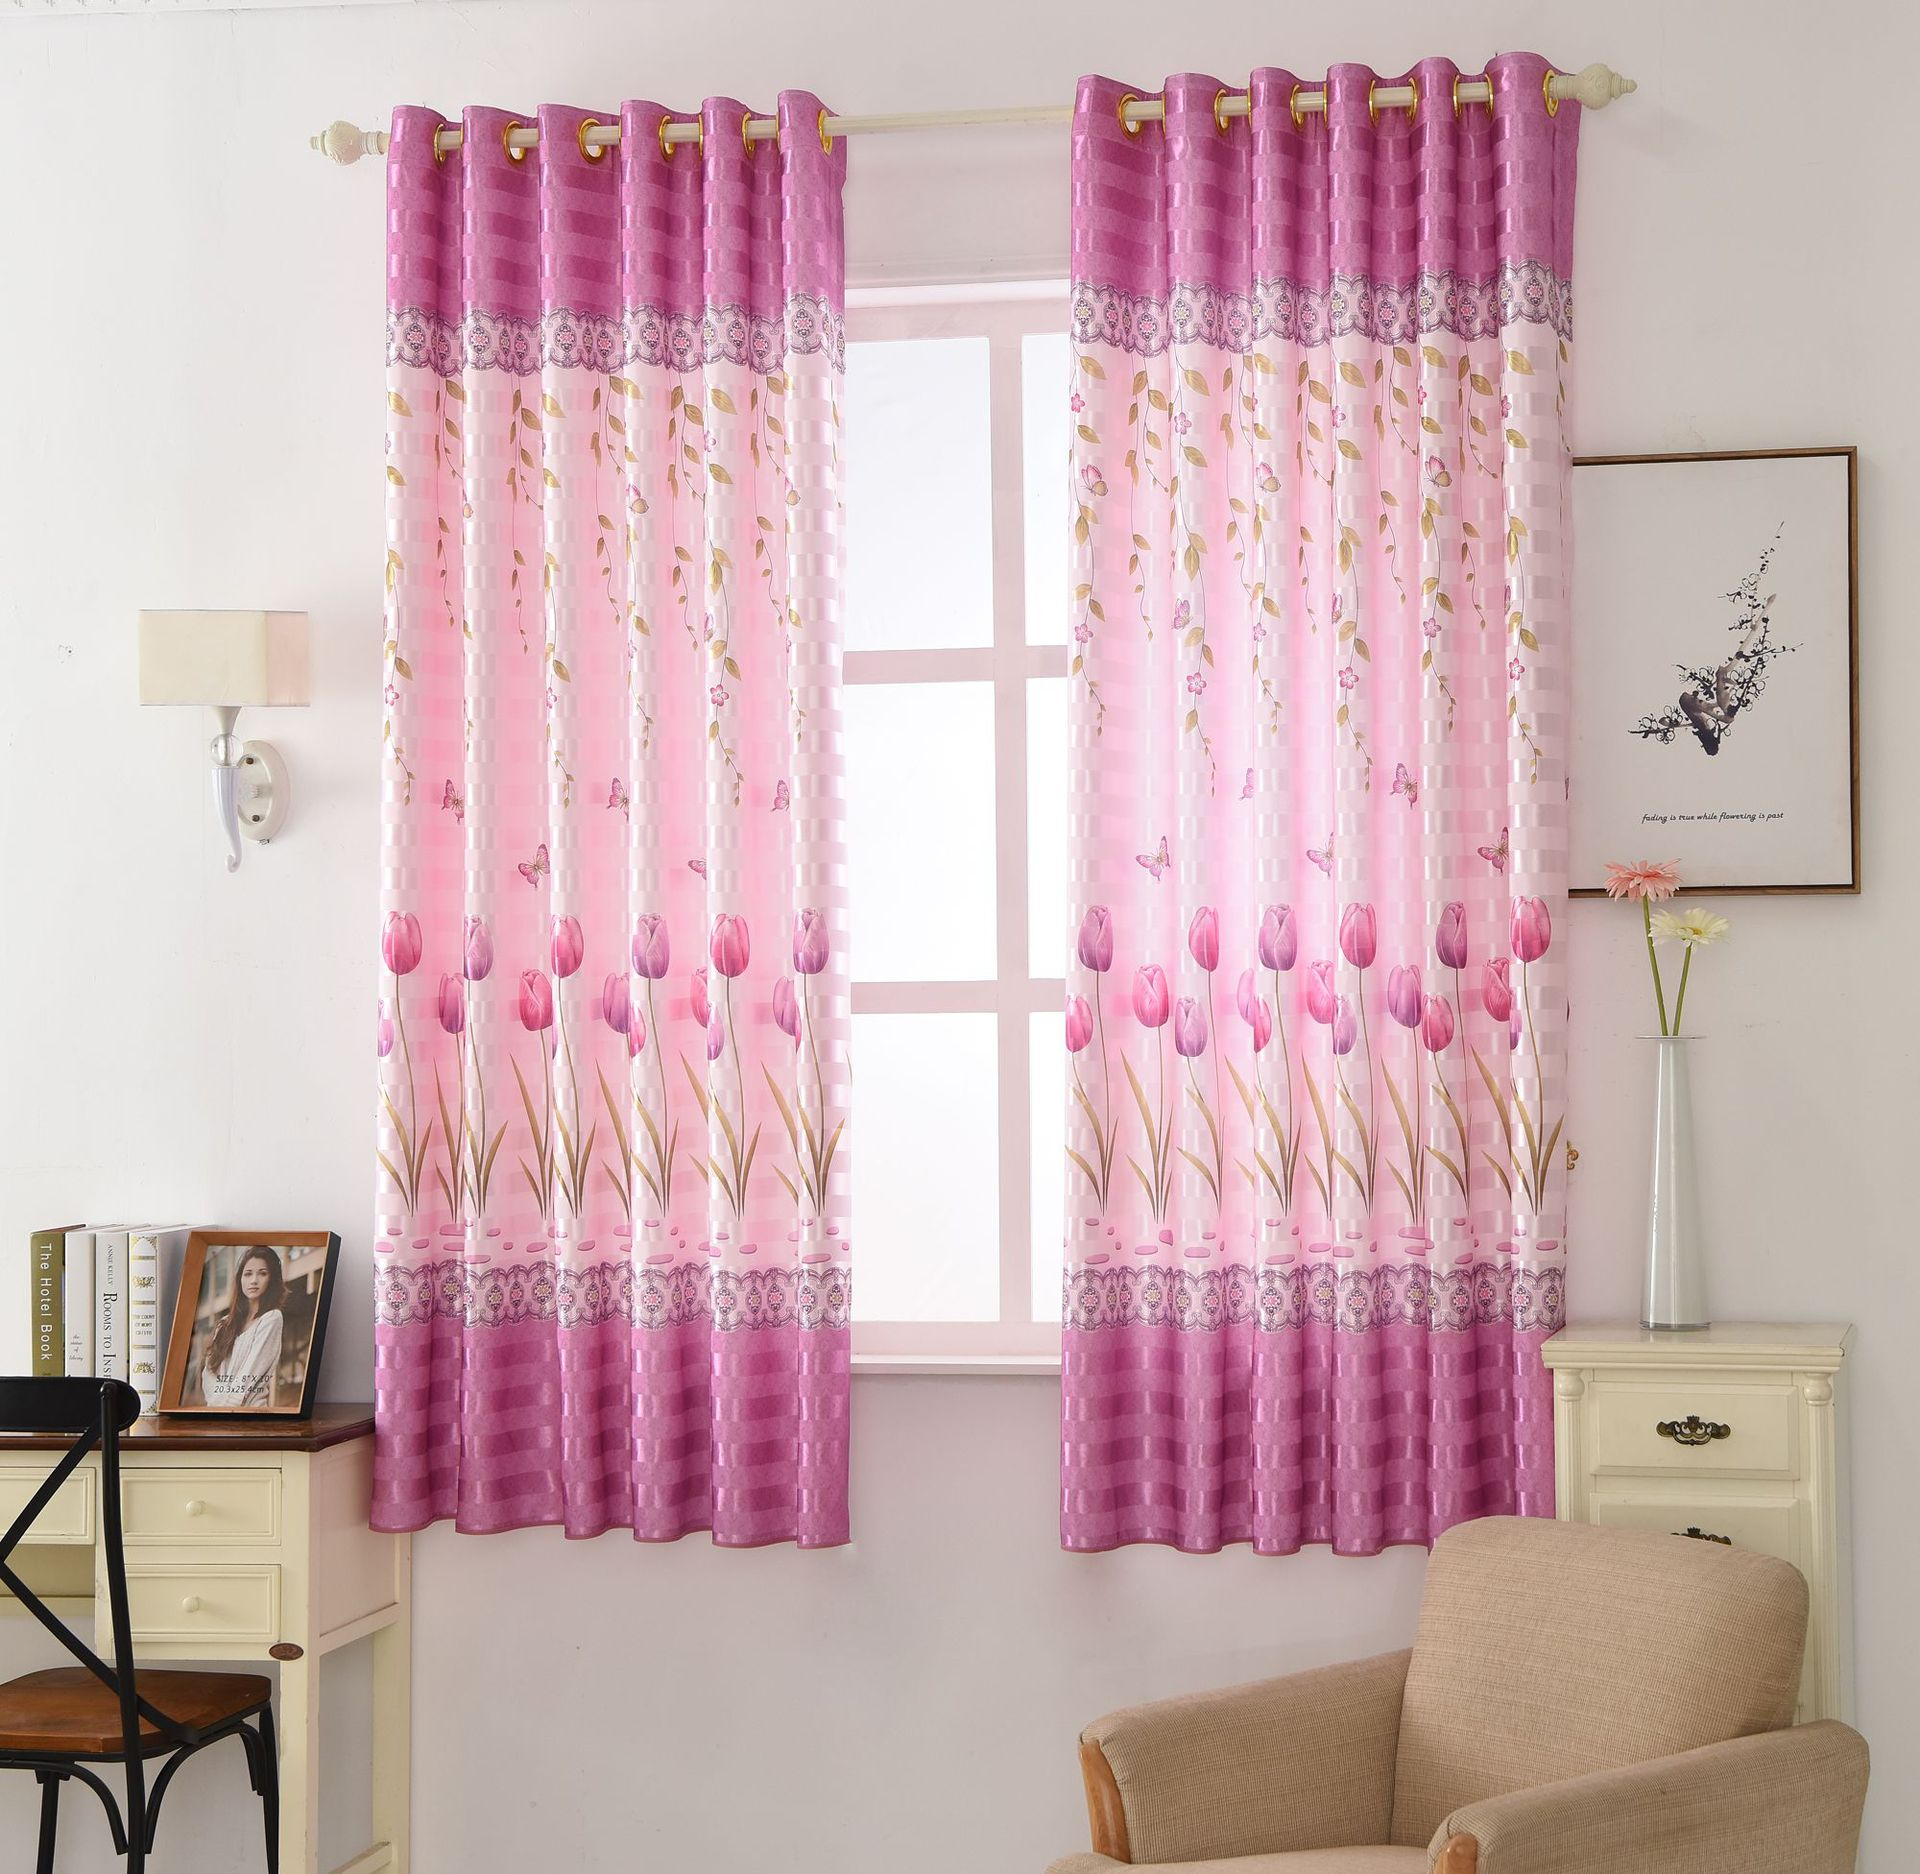 Short  Curtains For Bedroom Living Room Printing Curtain 2 Meters Short Curtain Half Shading Purple Tulips Printing